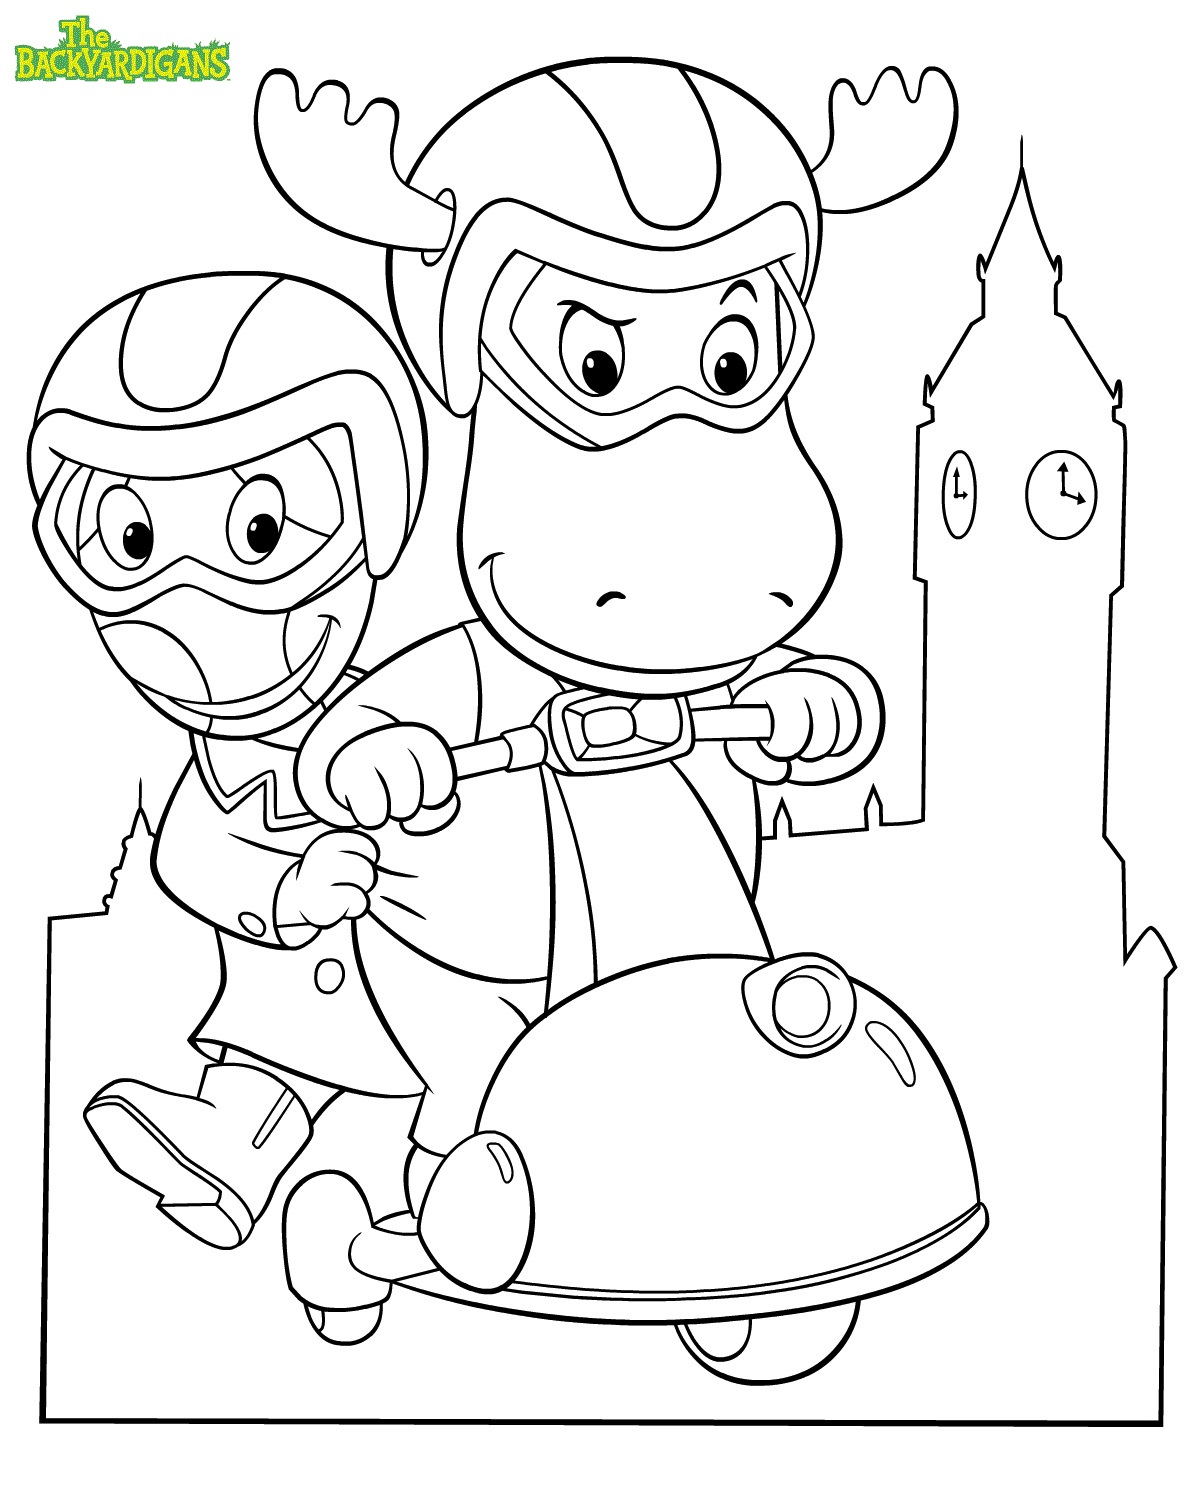 The Backyardigans Colouring Pages To Print